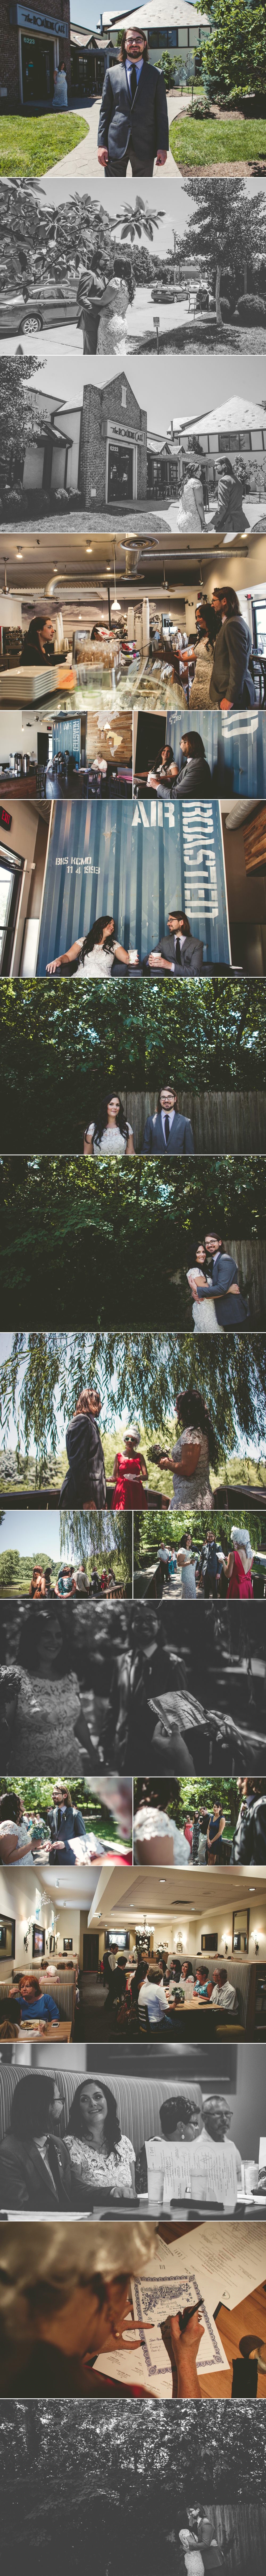 jason_domingues_photography_kansas_city_kc_wedding_best_photographer_creative_loose_park_roasterie_coffee